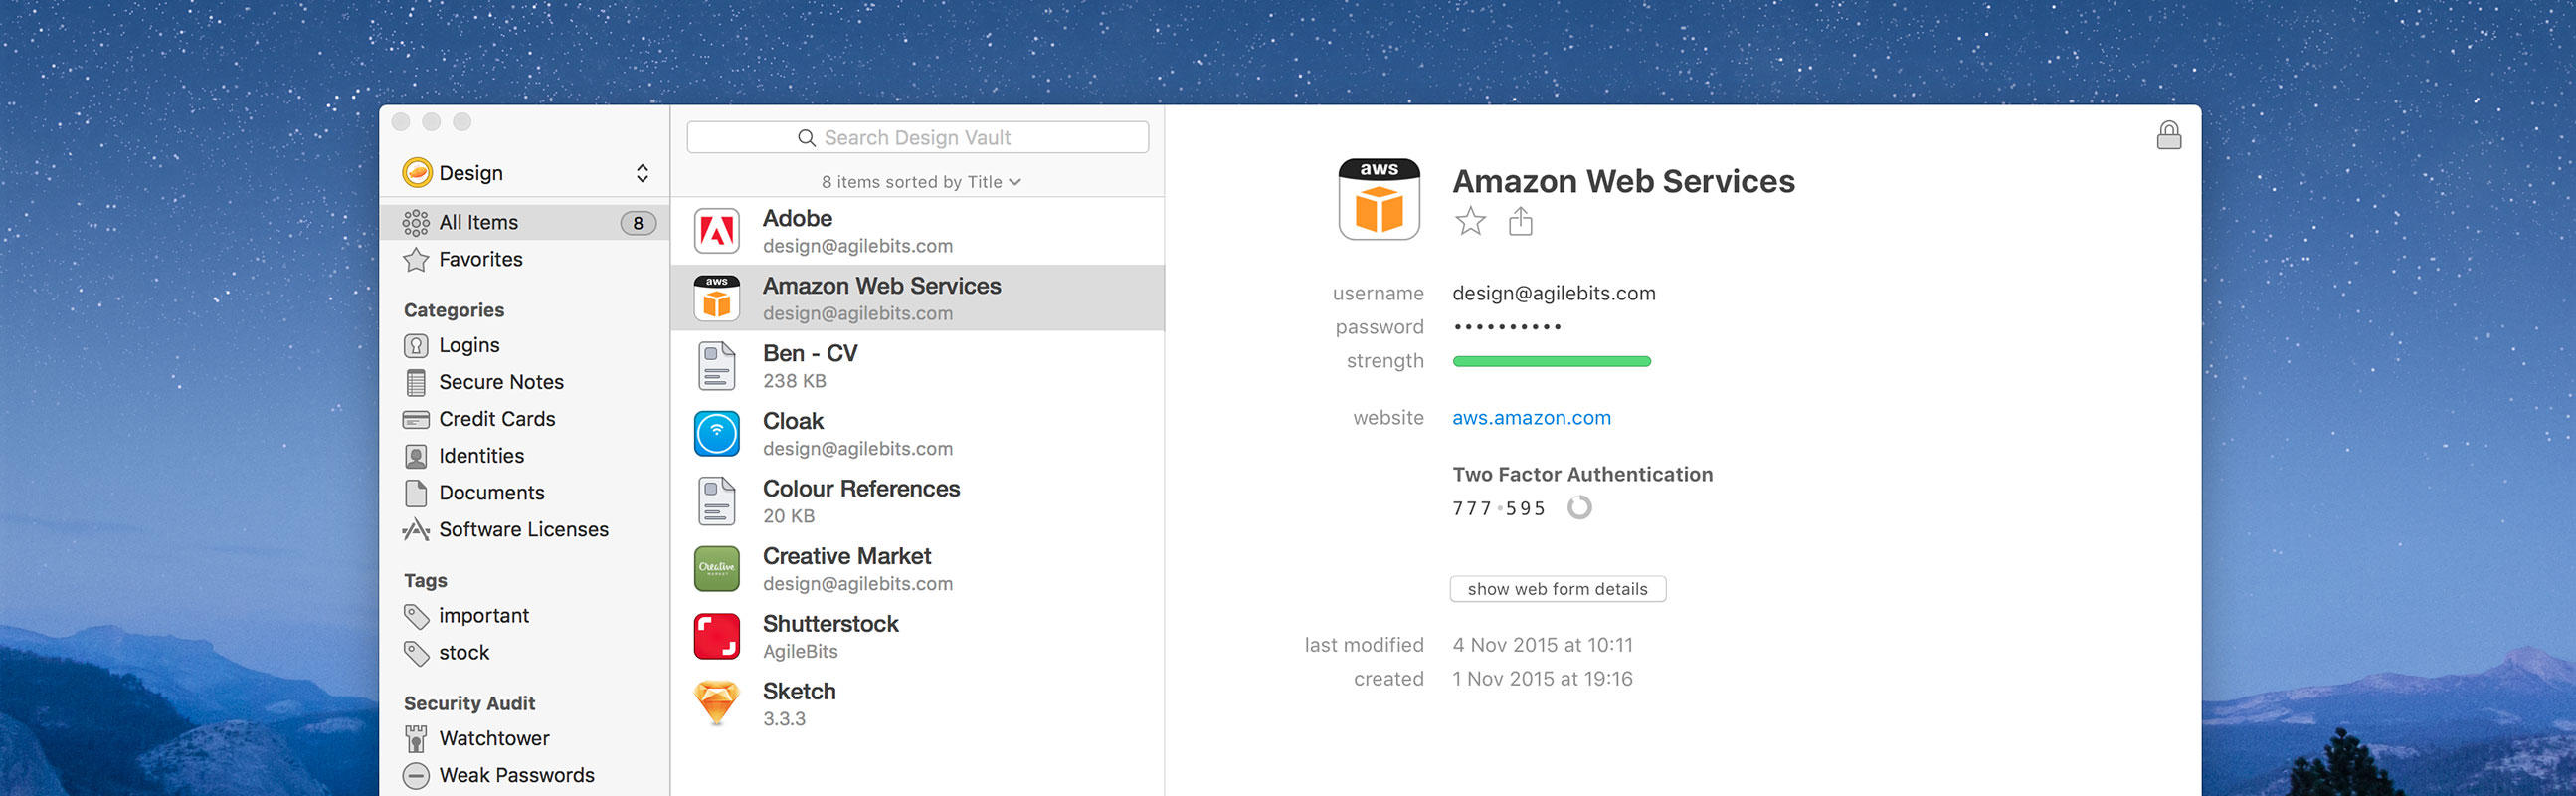 1Password is adding a subscription offering | TechCrunch